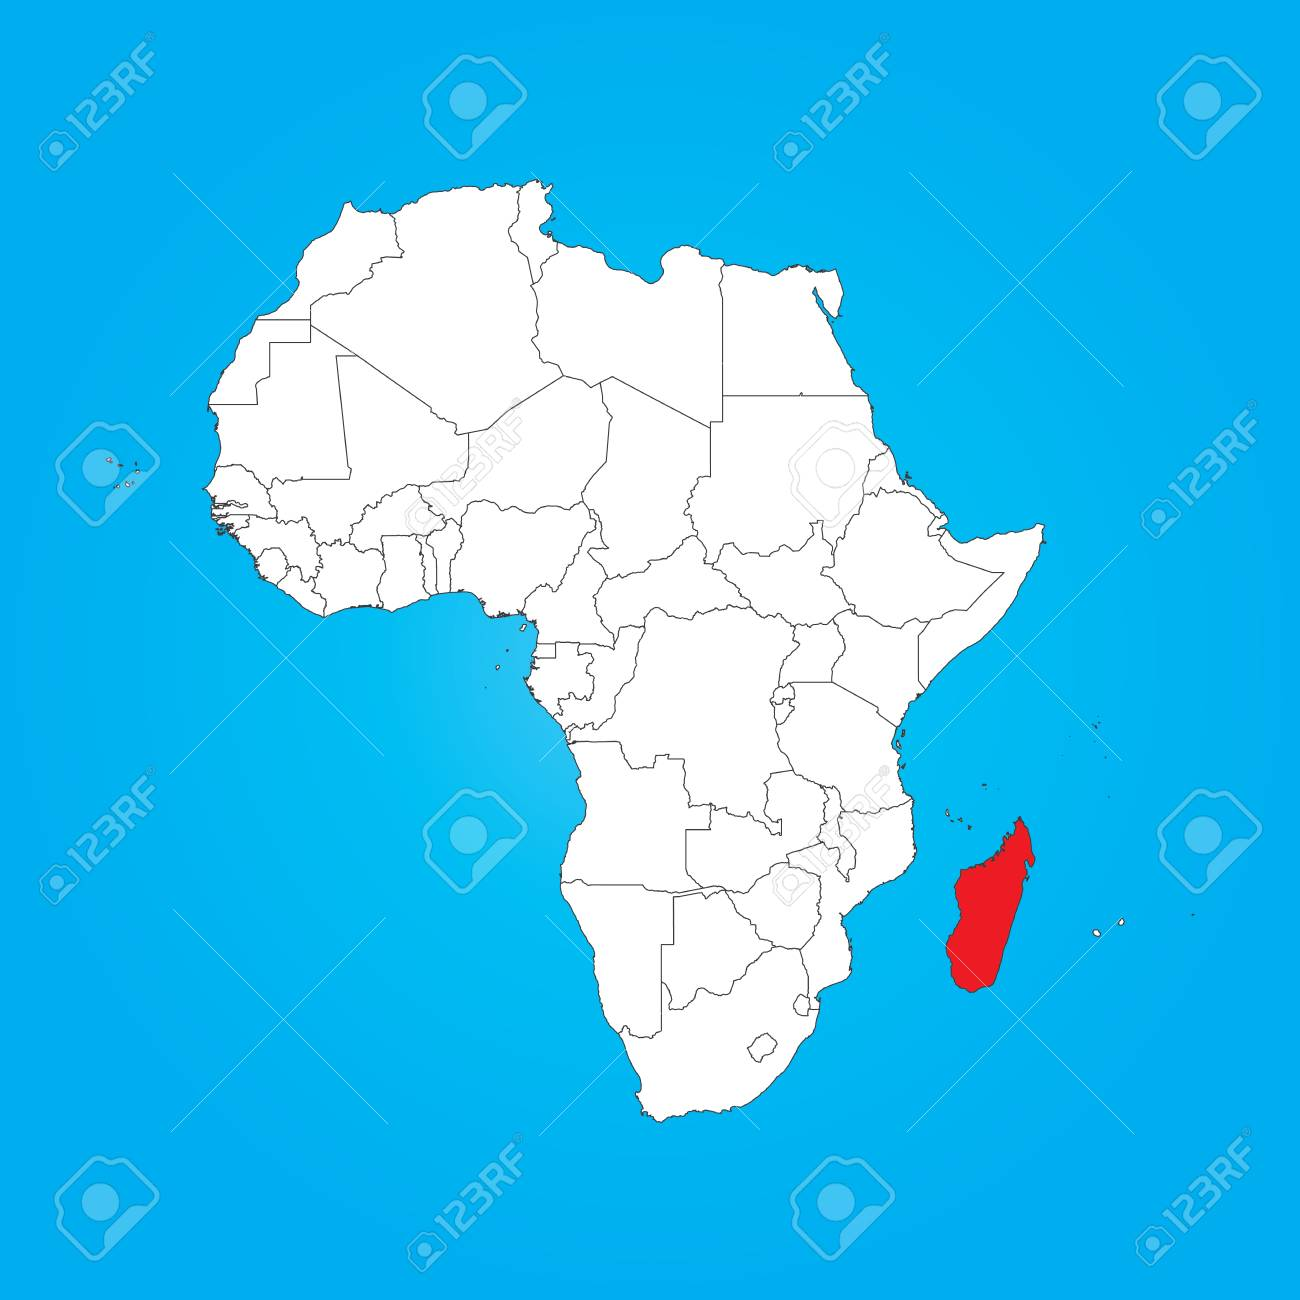 Map Of Africa Madagascar.A Map Of Africa With A Selected Country Of Madagascar